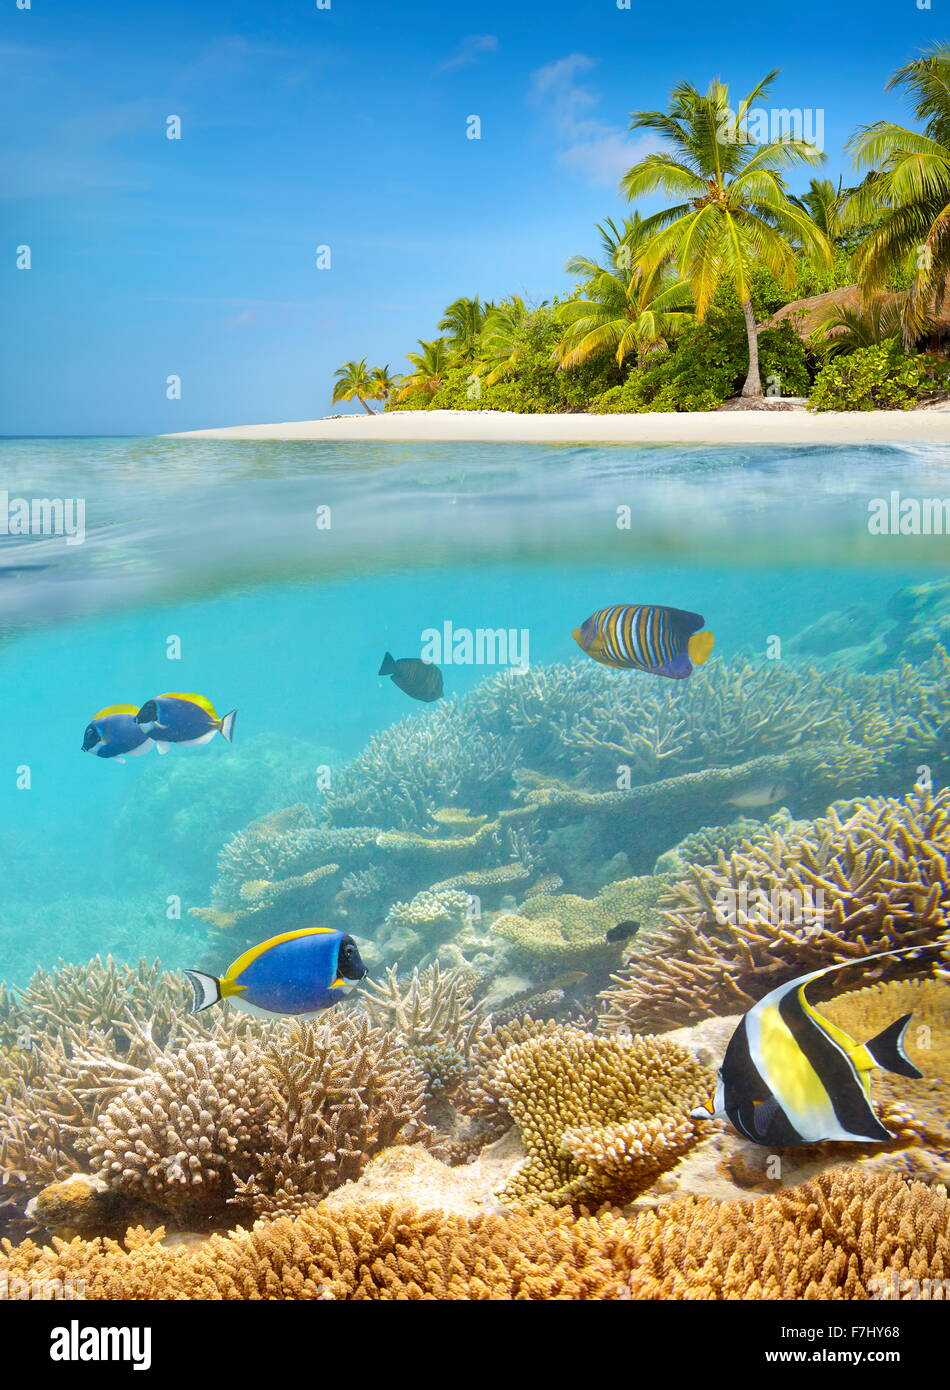 Tropical beach at Maldives Island - Stock Image